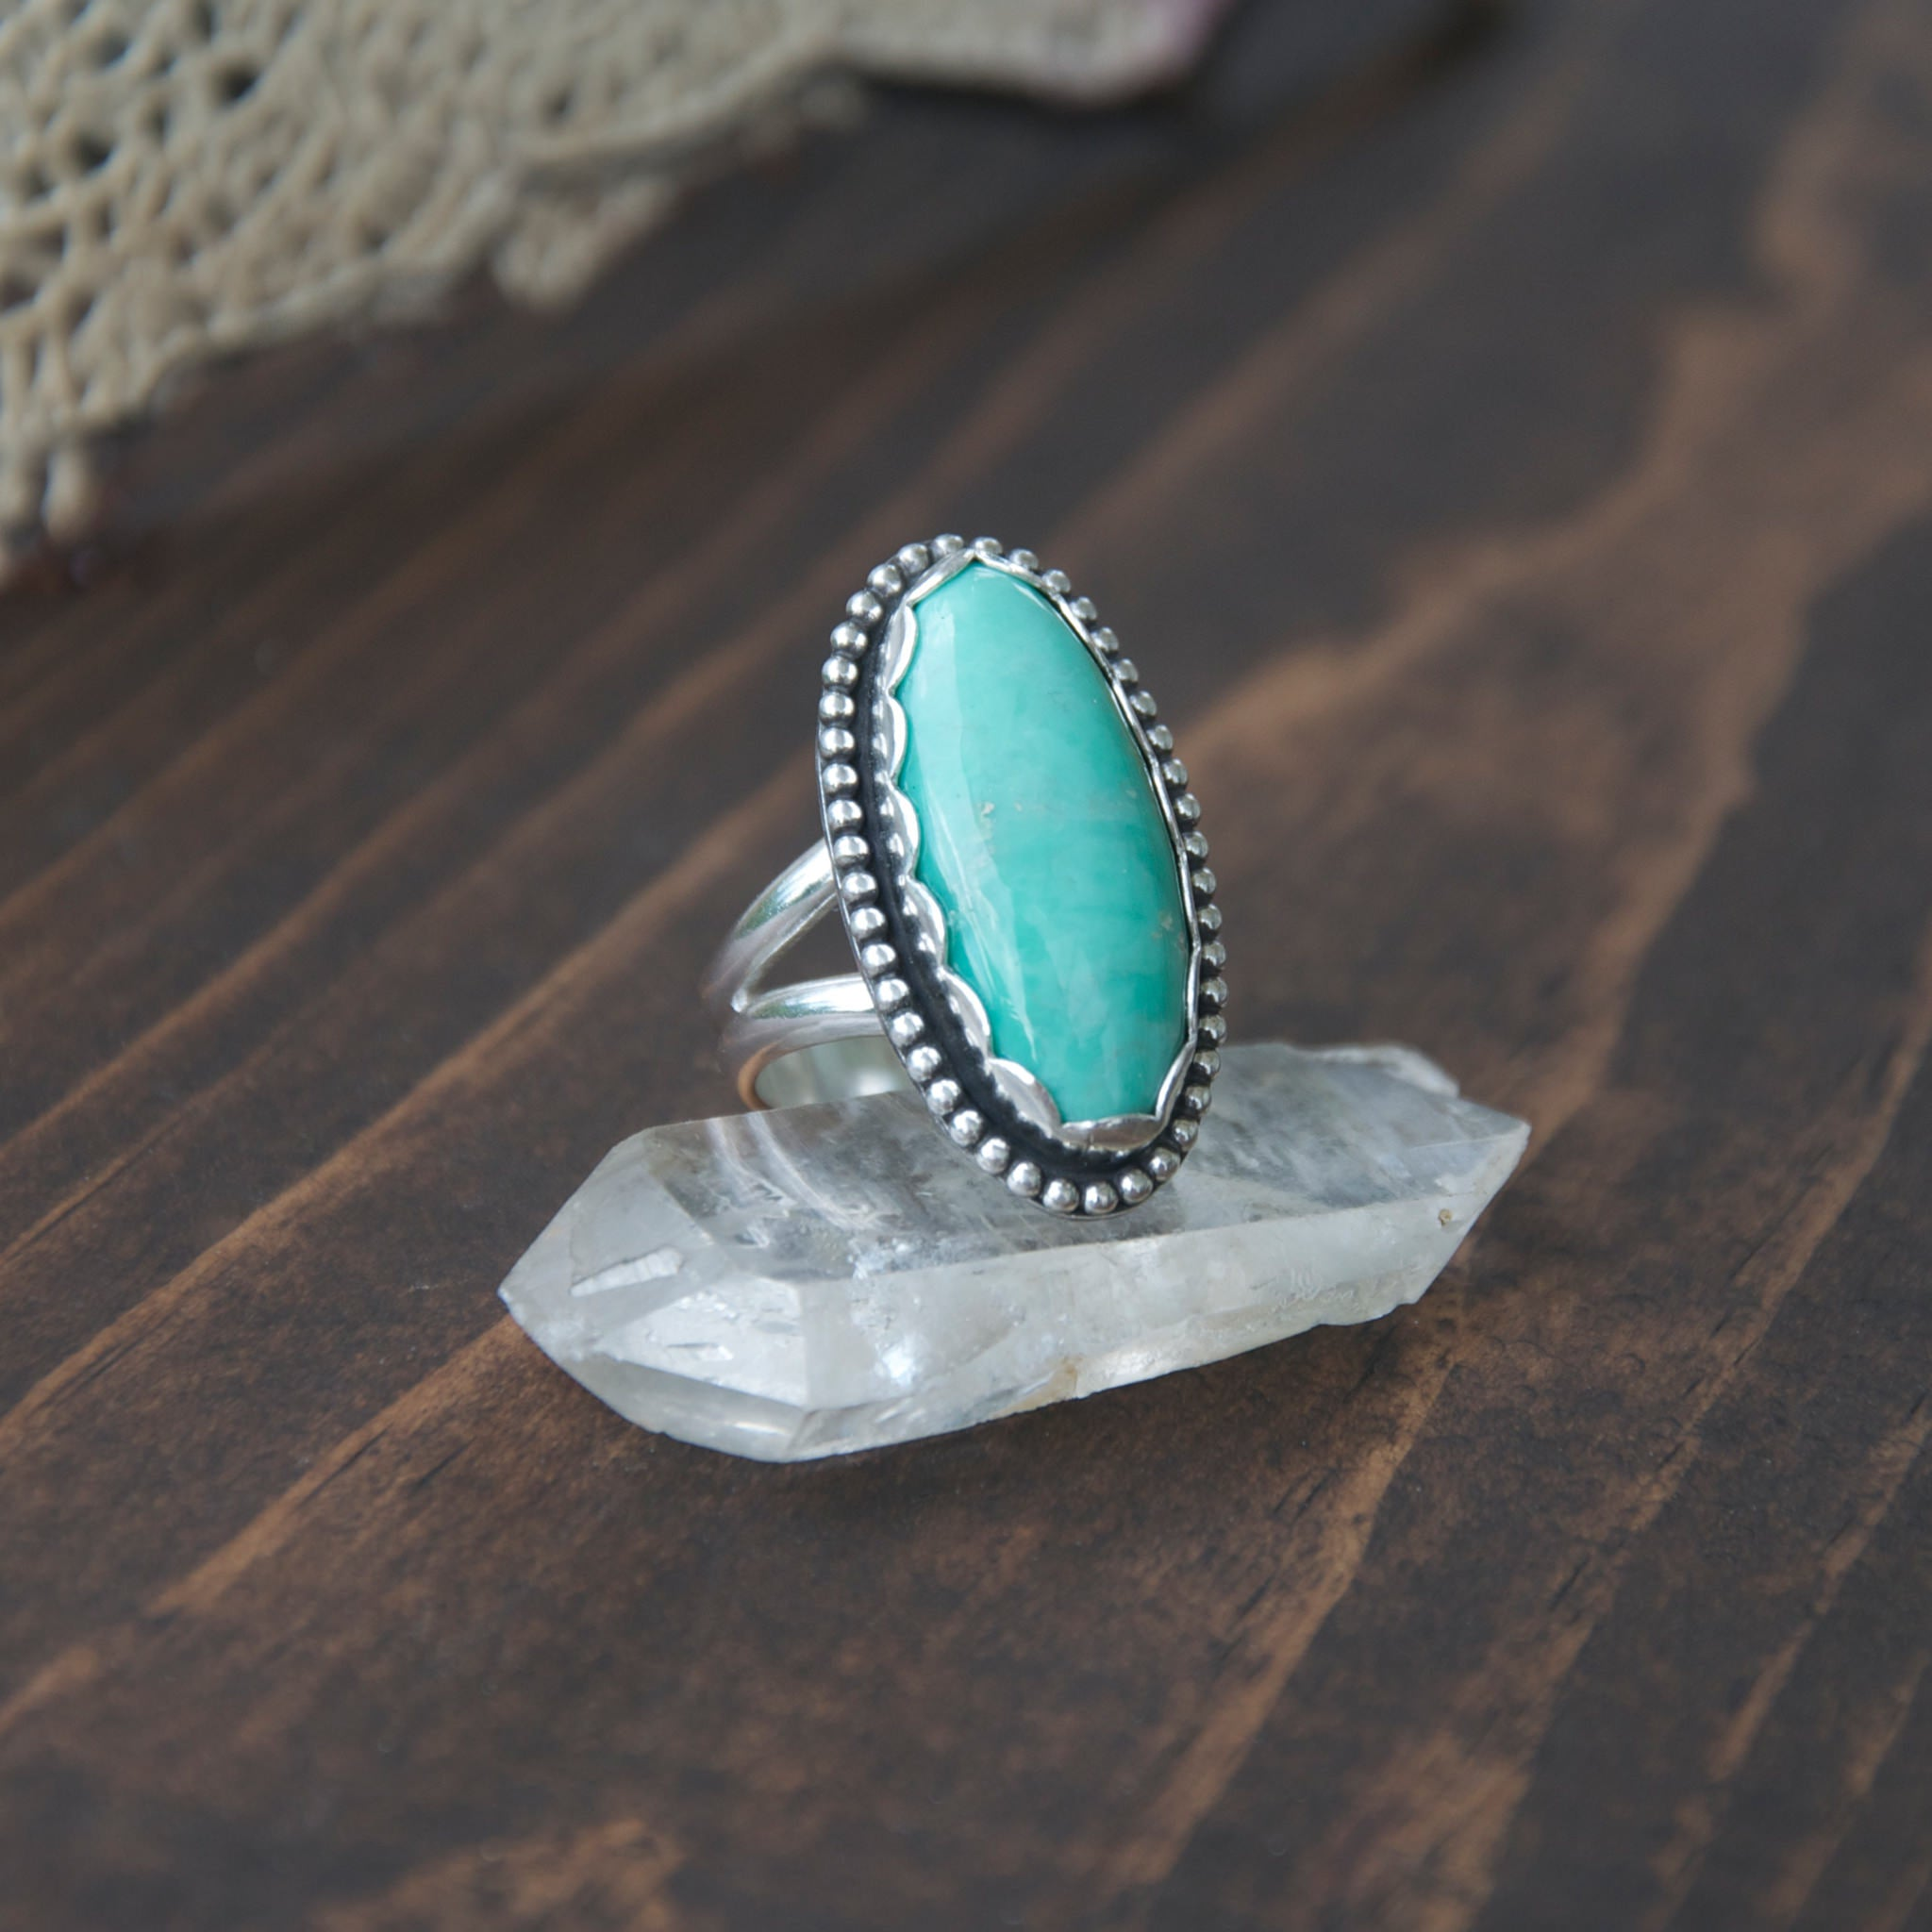 Variscite-Abundance-Ring-by-SpecialJCreations-on-Dark-Background